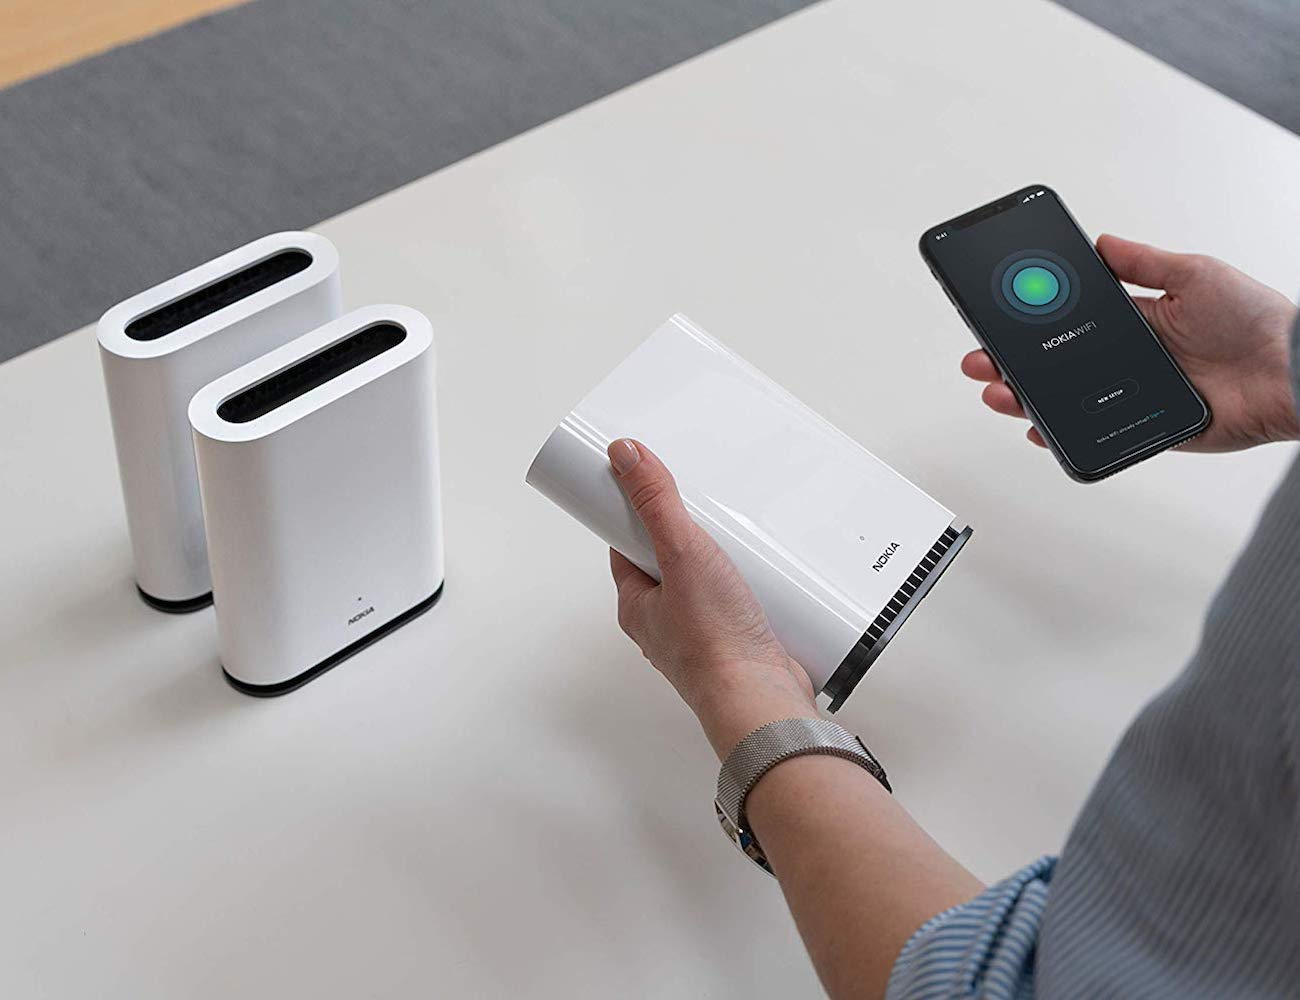 Nokia WiFi Beacon 1 Home Wi-Fi Coverage Extender replaces your current router